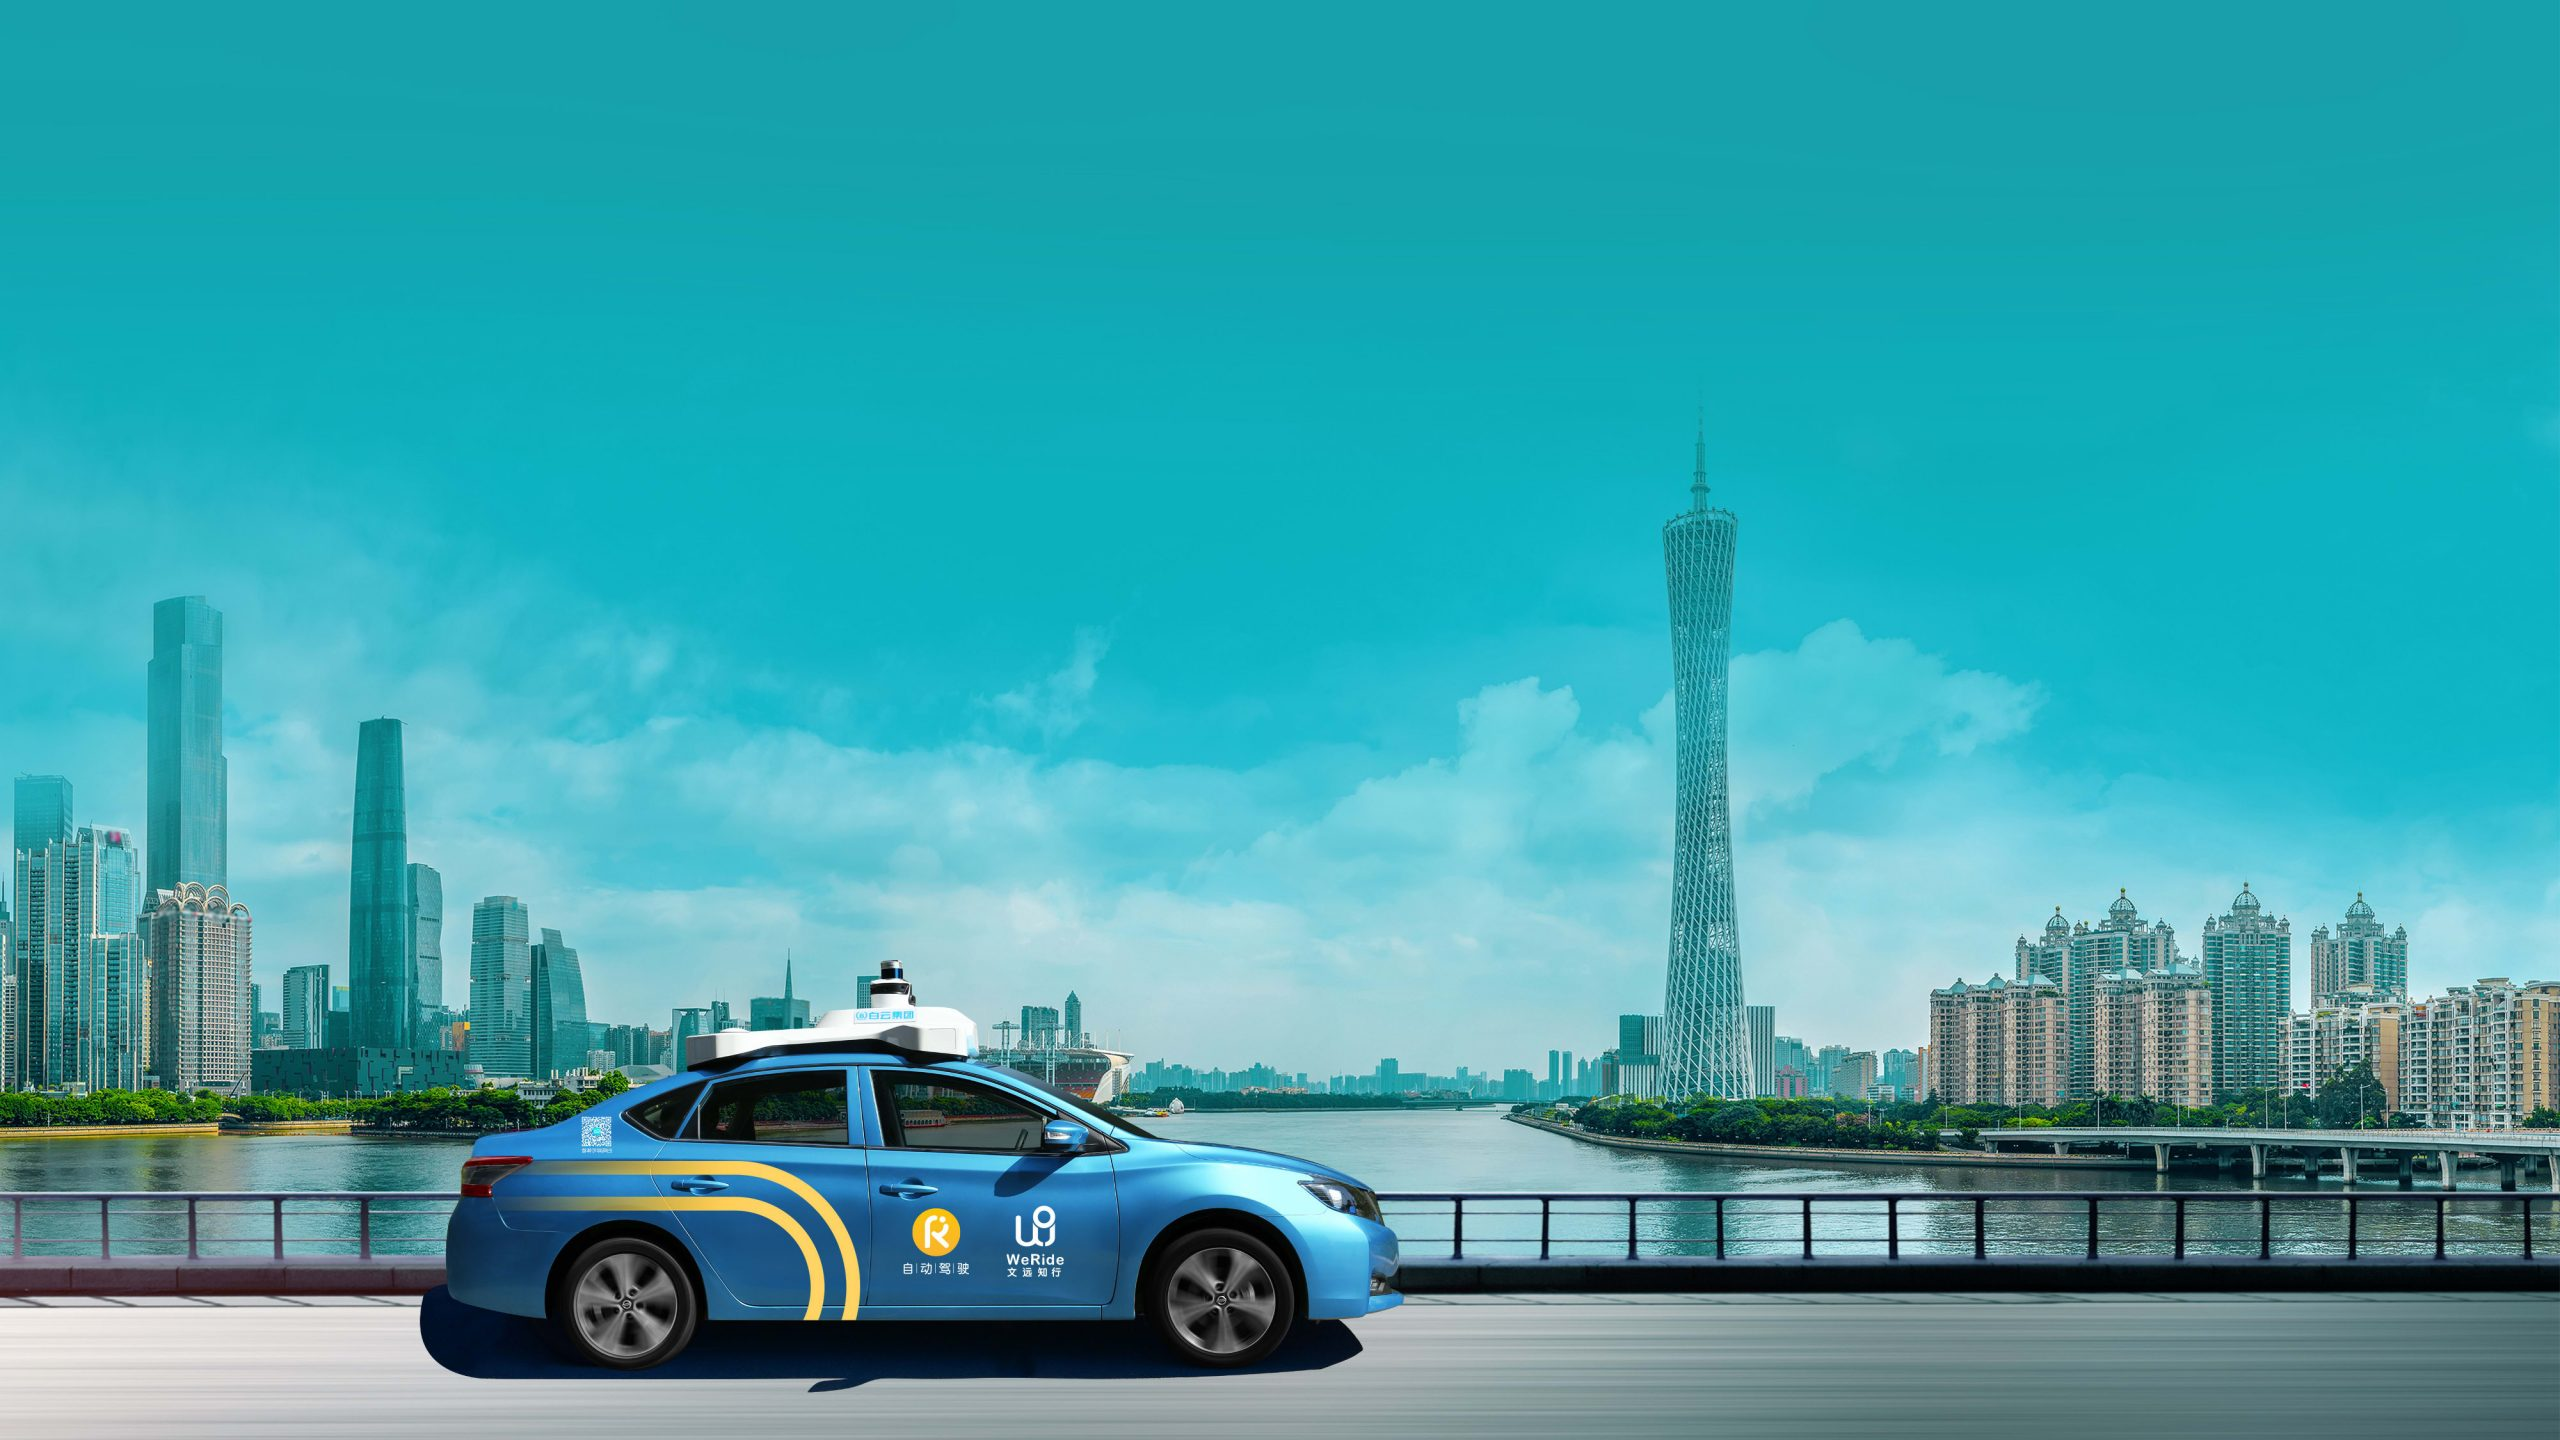 china's-driverless-car-upstarts-see-robotaxis-scaling-up-in-3-years-as-tech-firms-race-to-get-ahead